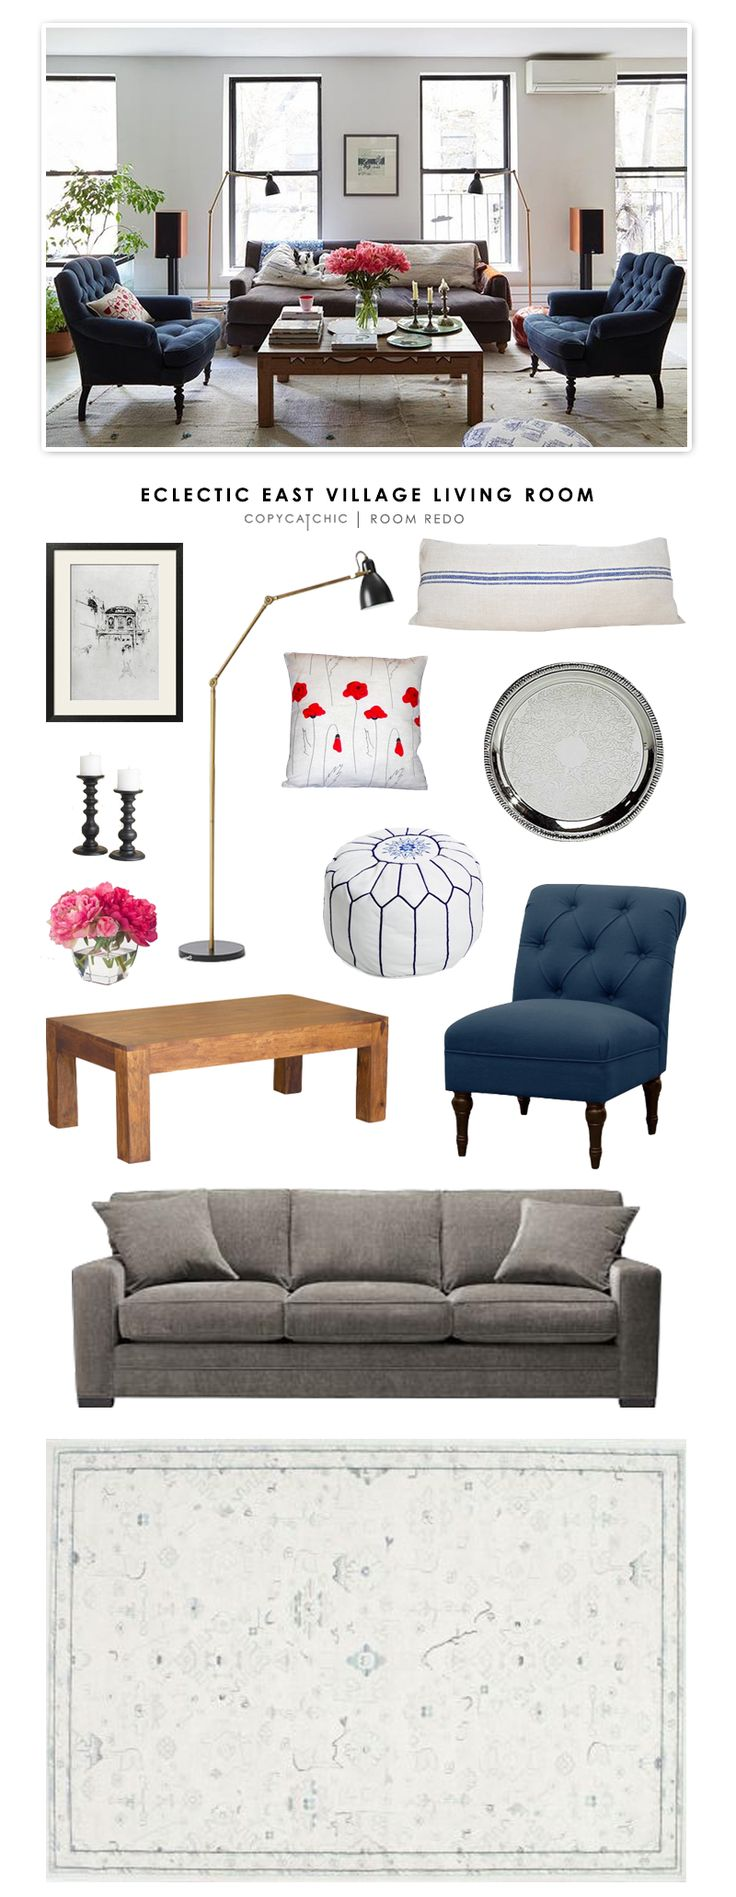 Copy Cat Chic: Copy Cat Chic Room Redo | Eclectic East Village Living Room by @audreycdyer